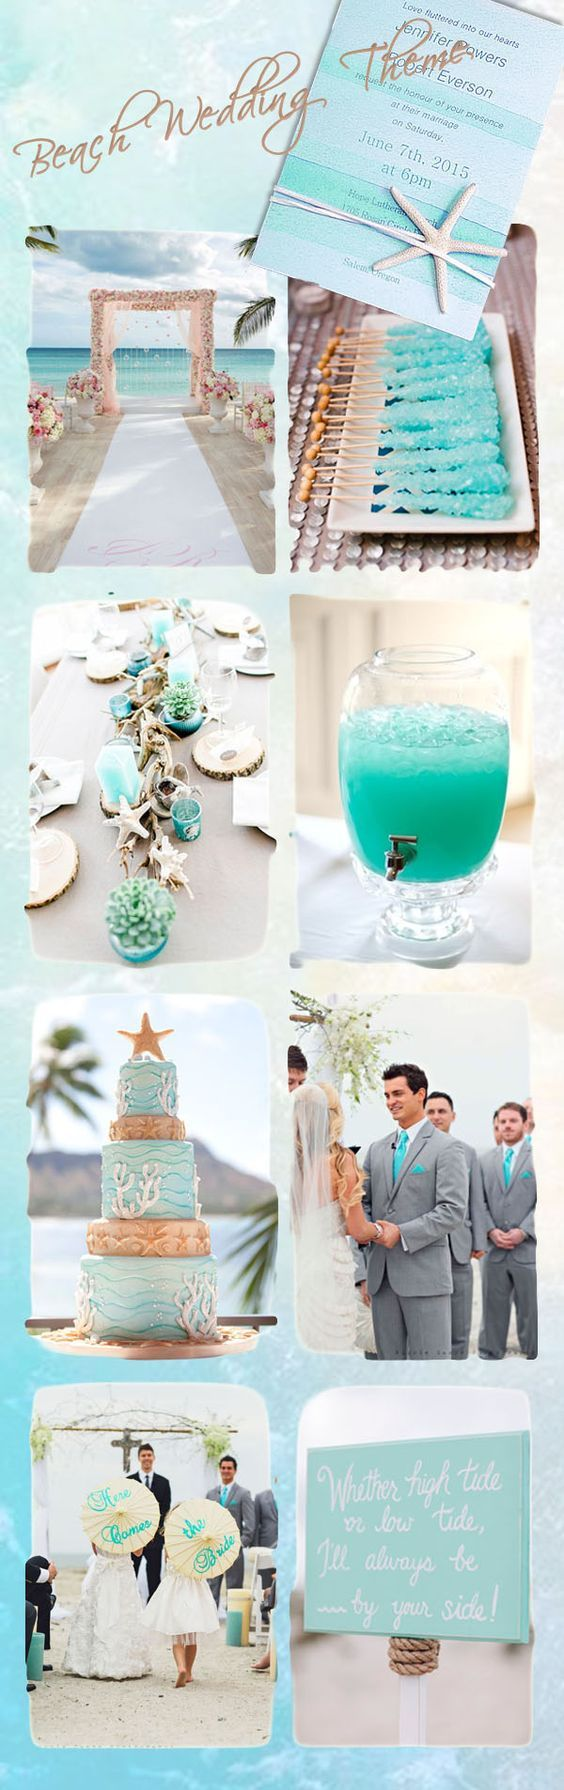 187 best wedding ideas images on Pinterest | Country weddings ...